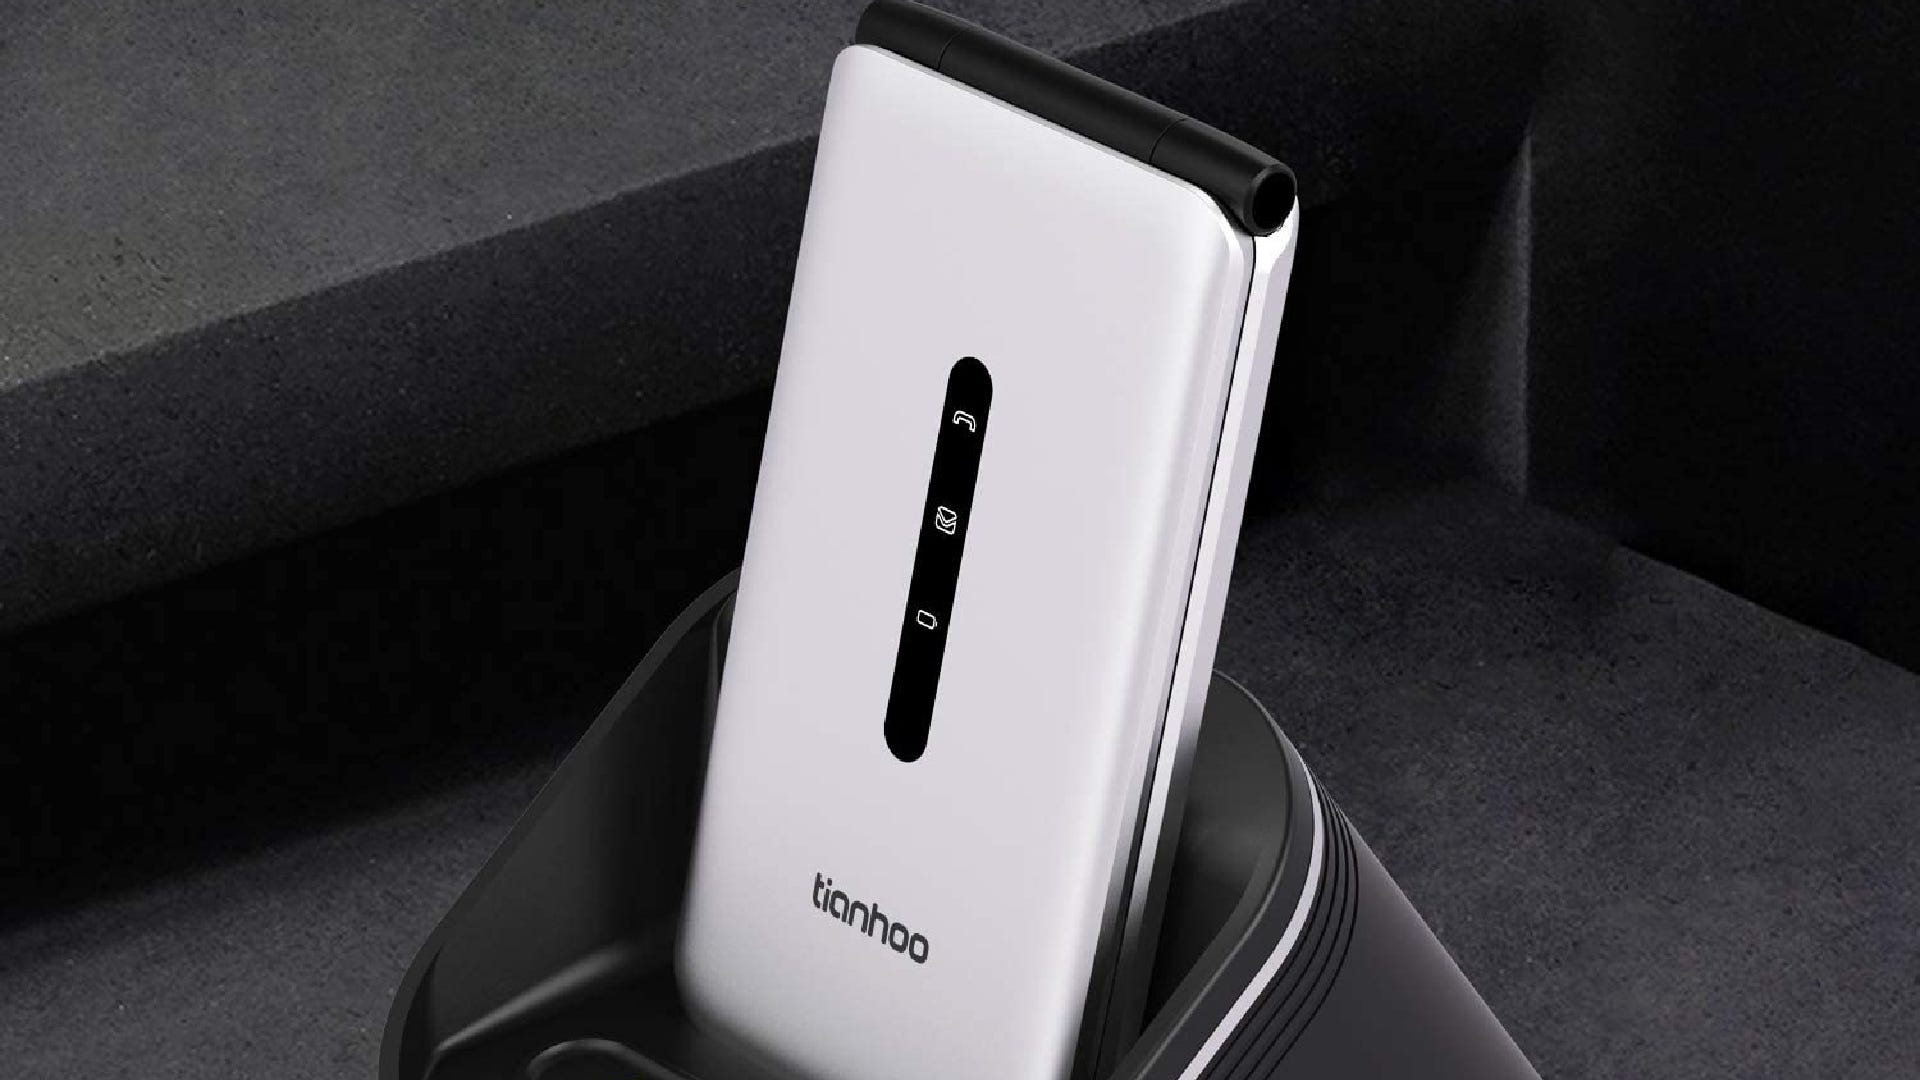 A white flip phone rests in its charging dock.